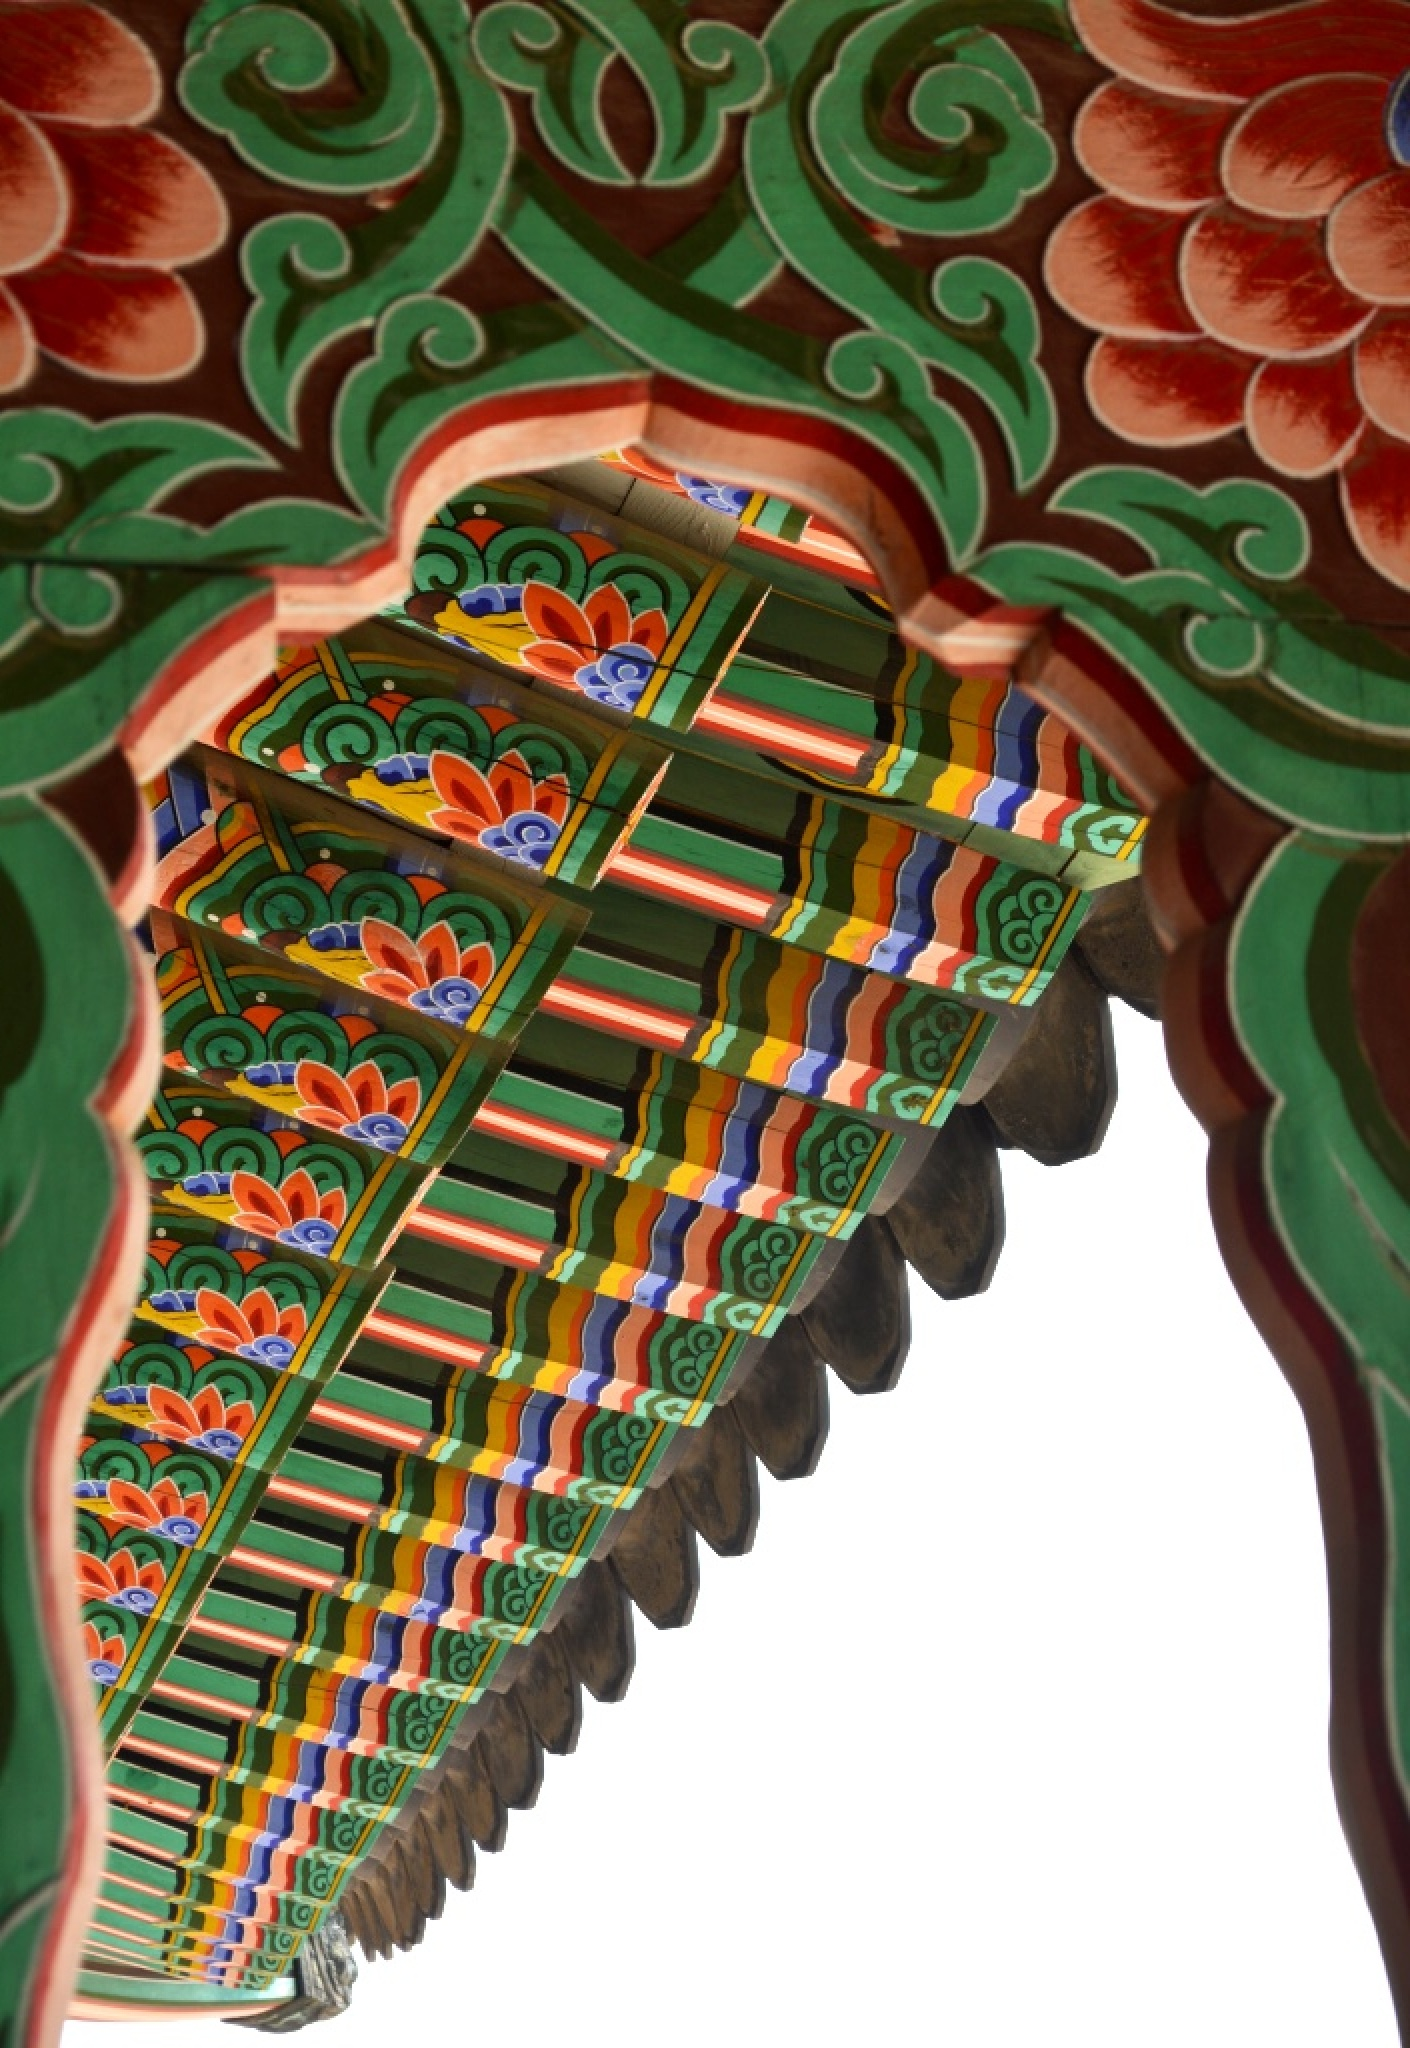 Traditional Korean Palace Details 2 by HKS Images